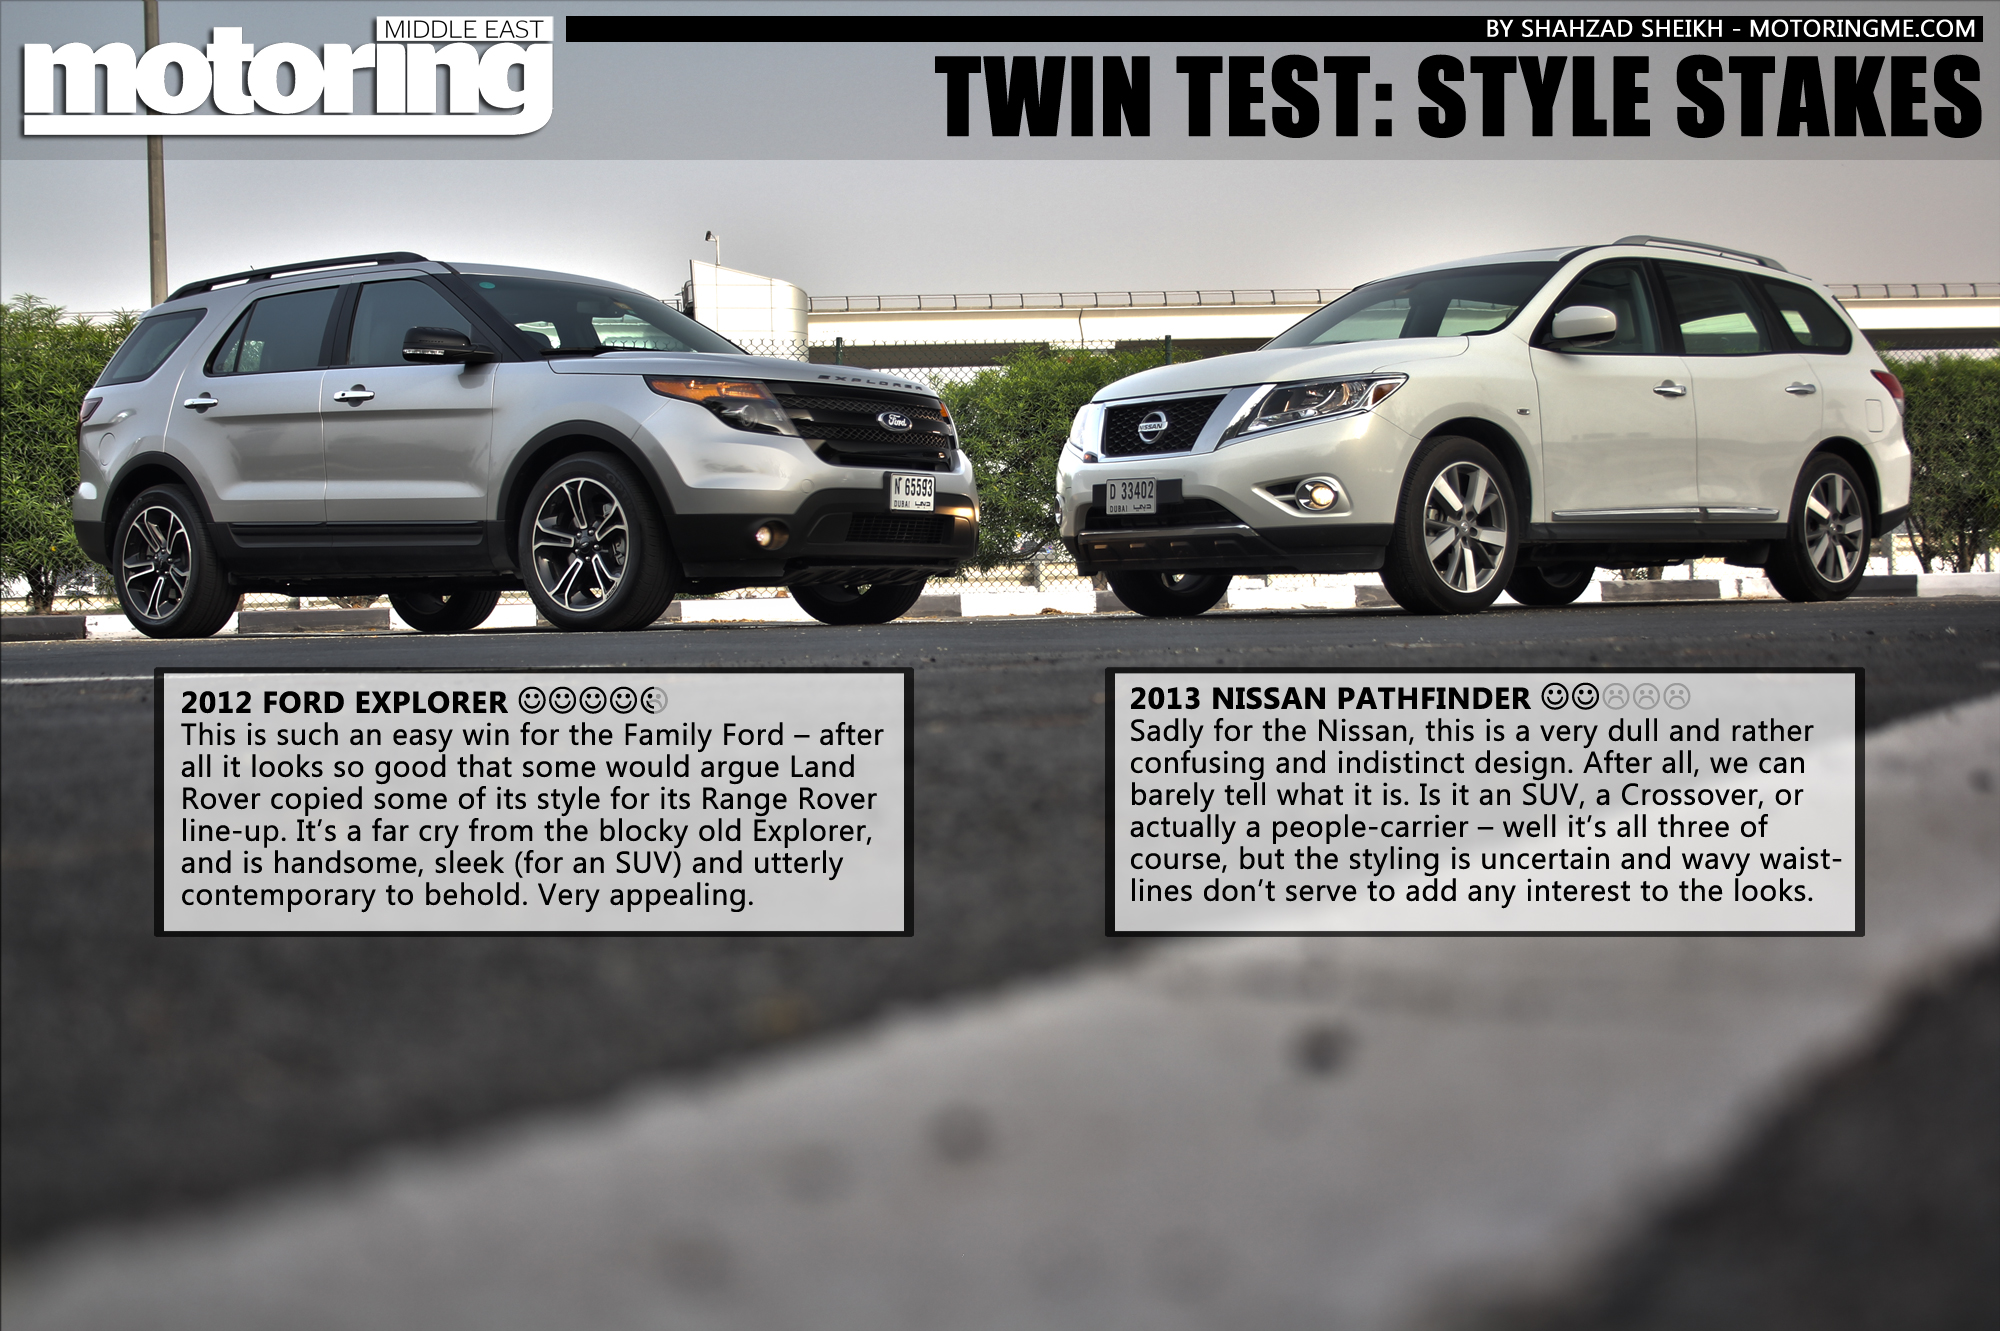 Twin Test 2013 Nissan Pathfinder Vs 2012 Ford Explorer Motoring Sport